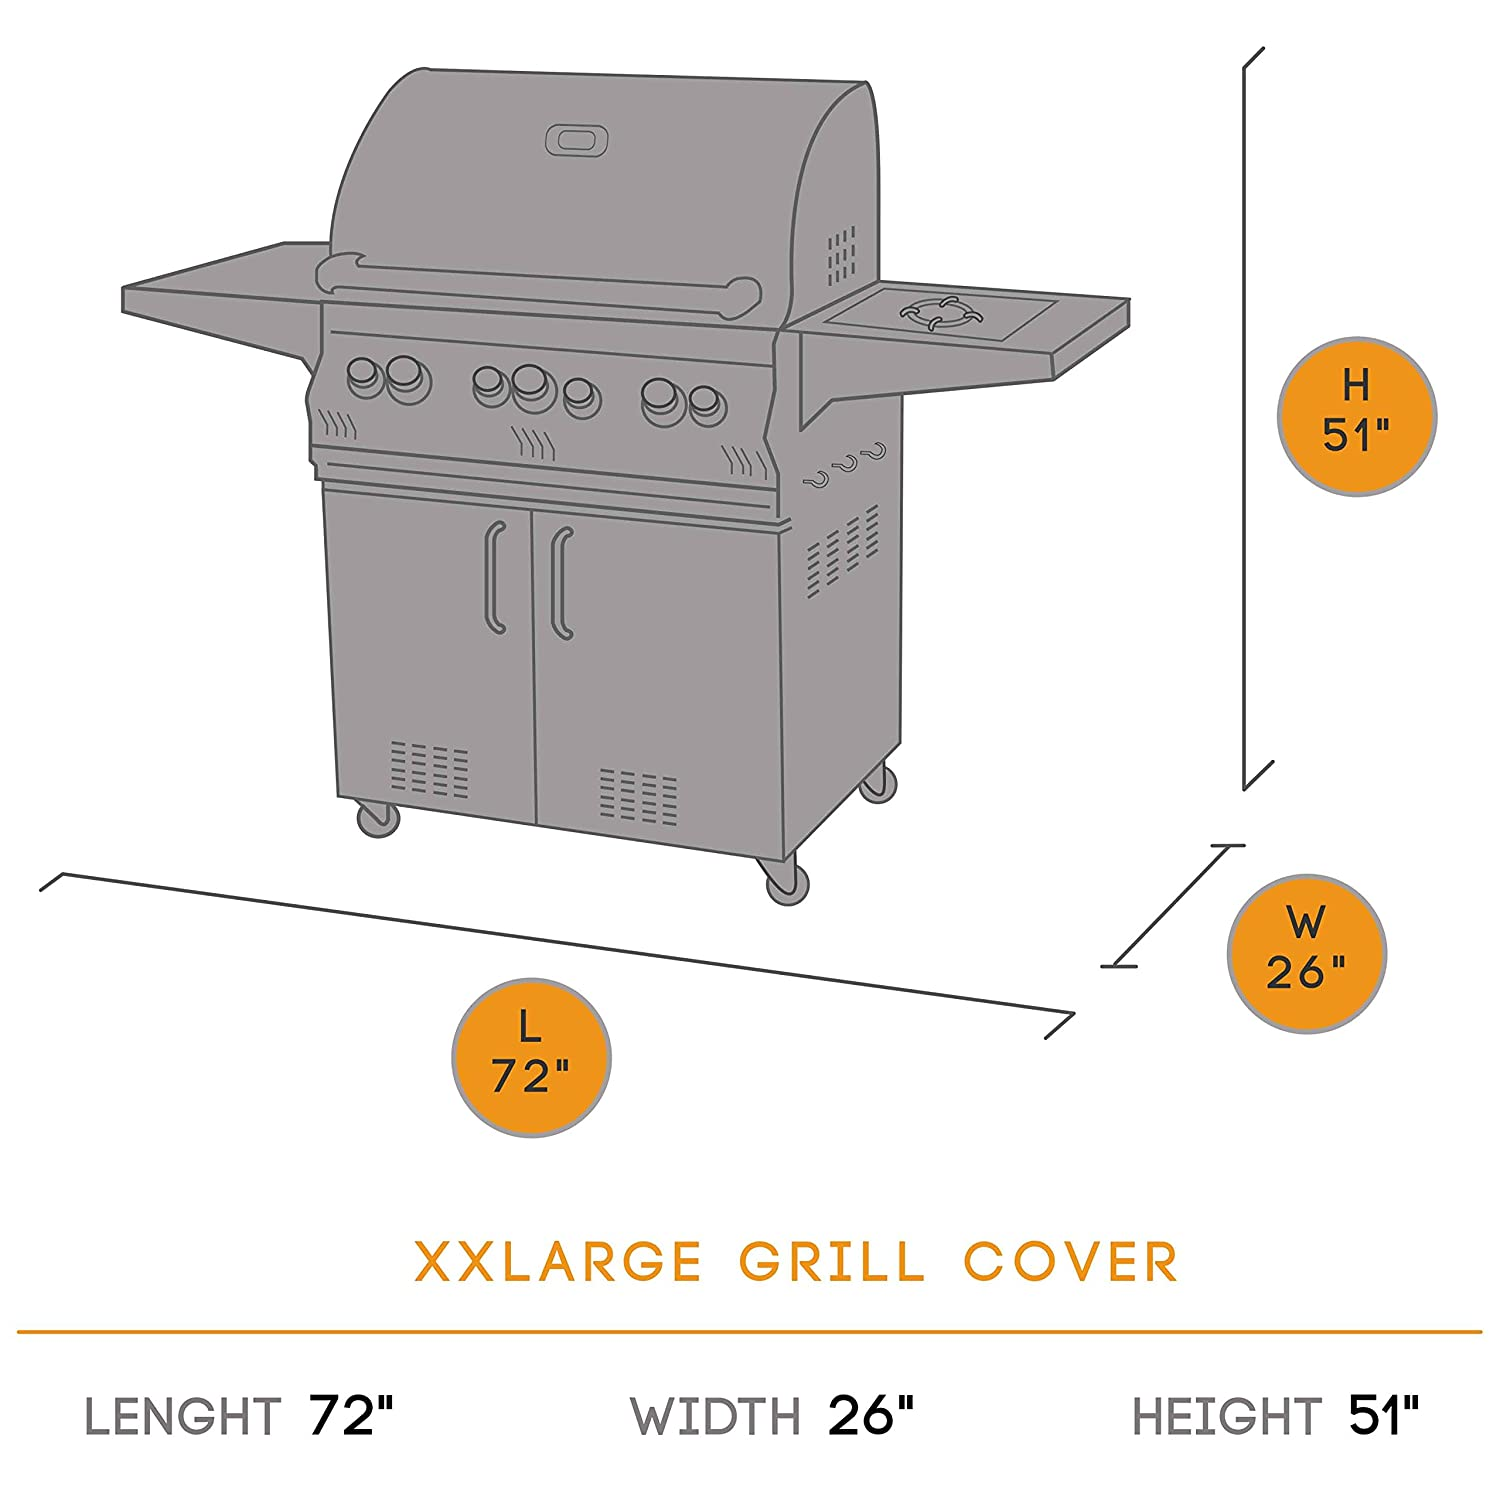 KHOMO GEAR TITAN Series, Waterproof Heavy Duty BBQ Grill Cover, Grey Medium 58 x 24 x 48, Different, Compatible with Weber (Genesis), Holland, Jenn Air, Brinkmann, Char Broil, Kenmore and More BBQ-Grey-M